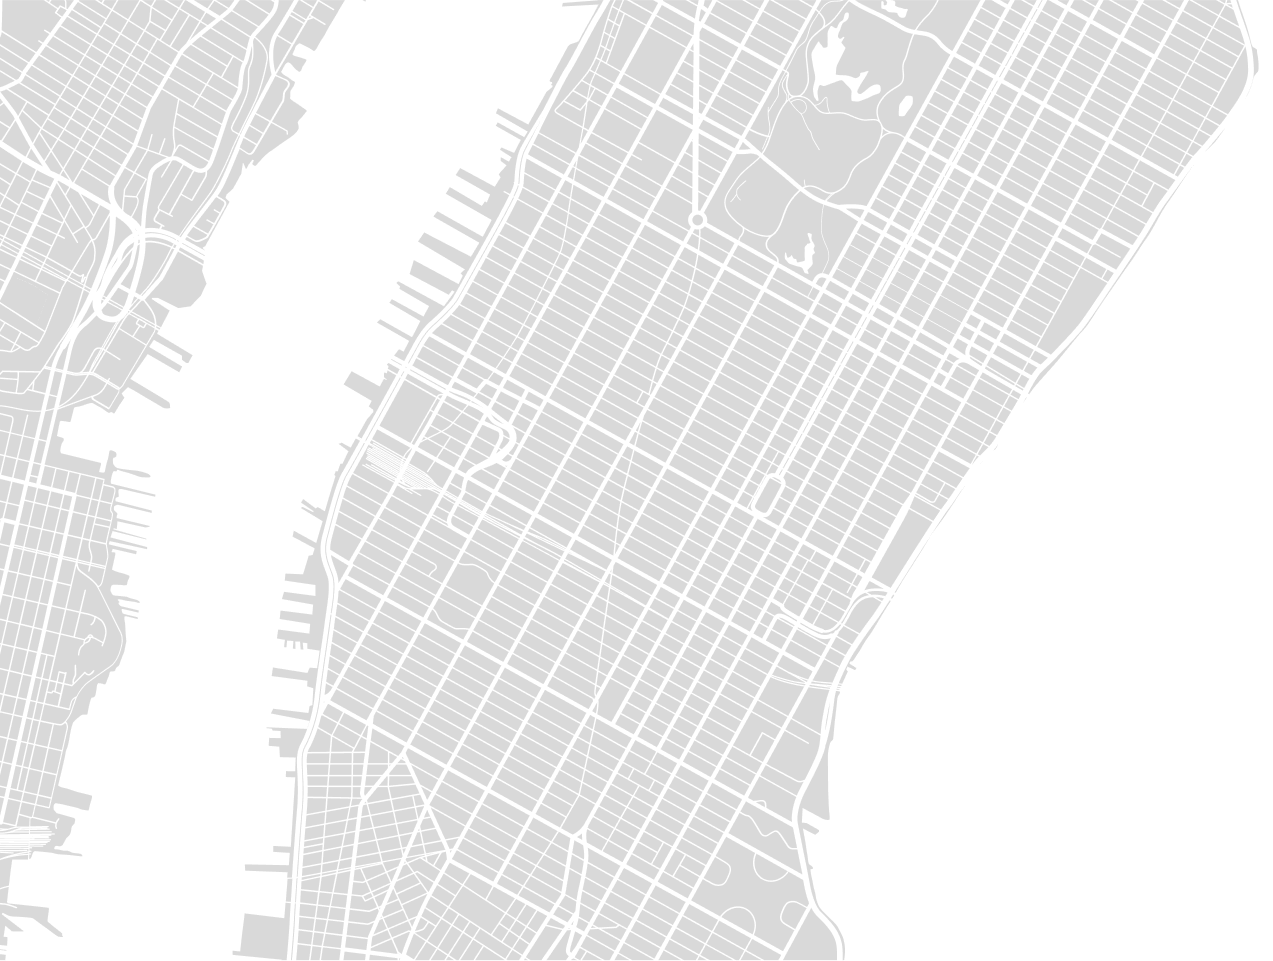 A map of New York city